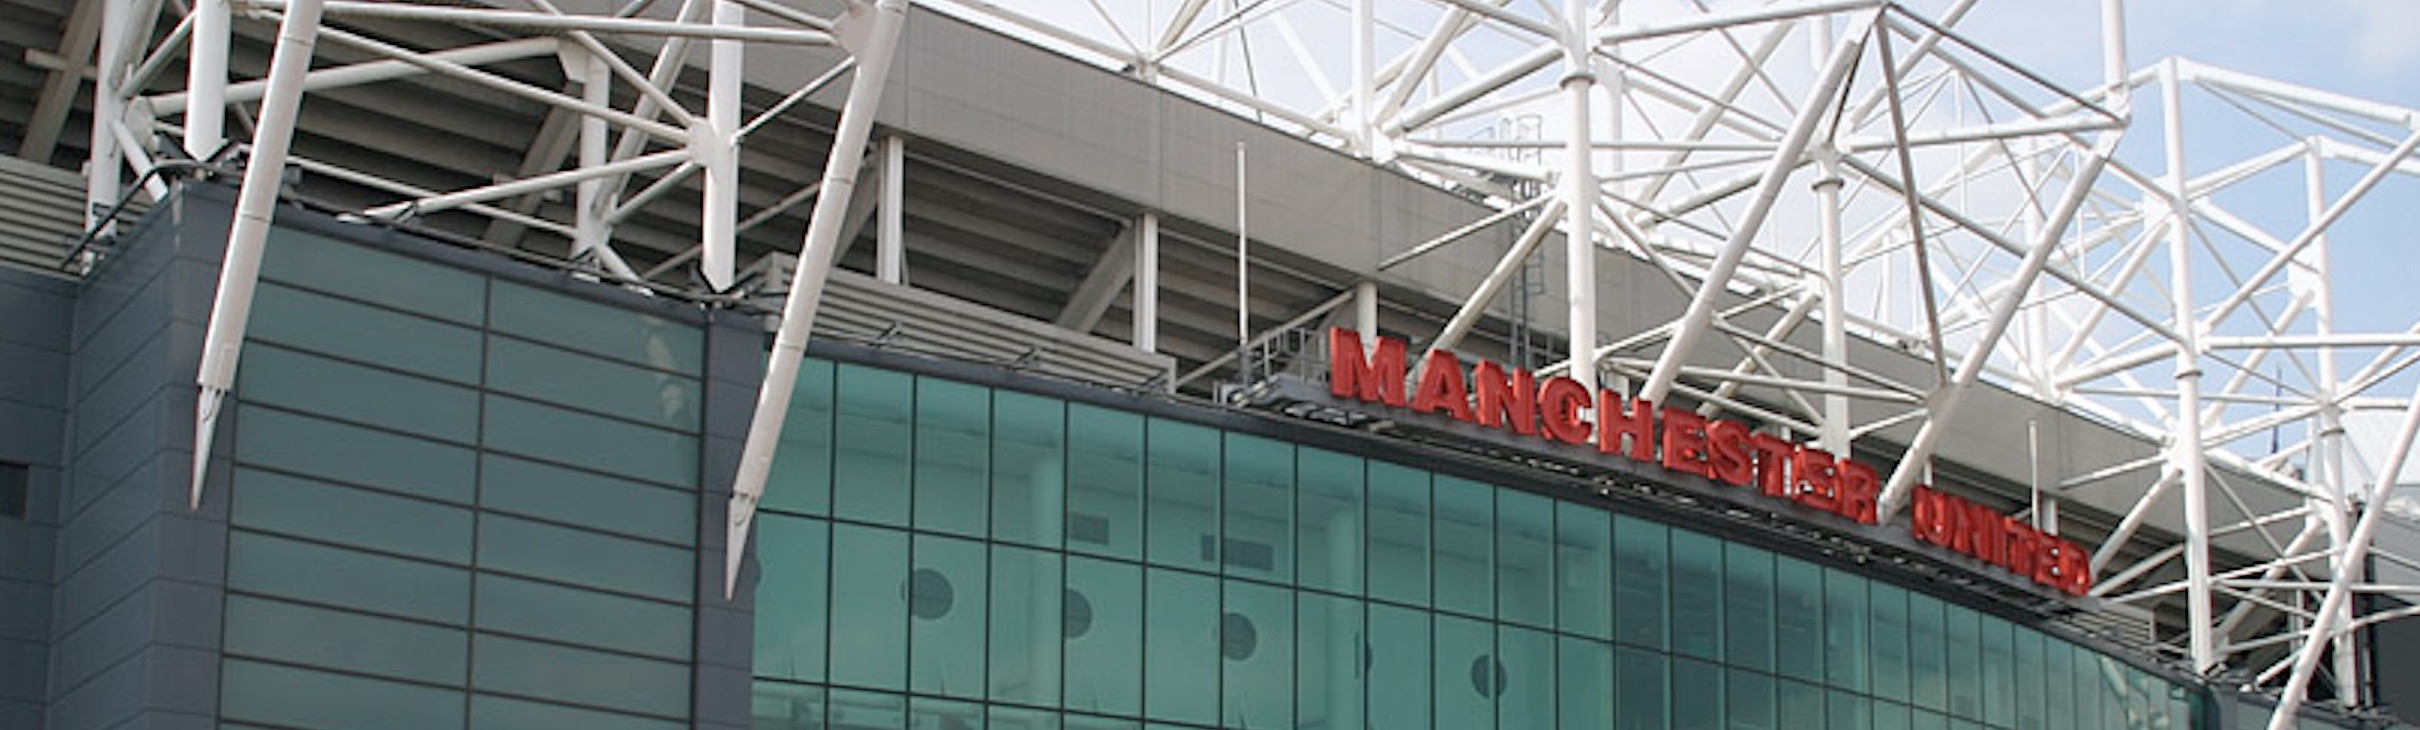 Man United V Brighton - Coach/Ferry & Hotel